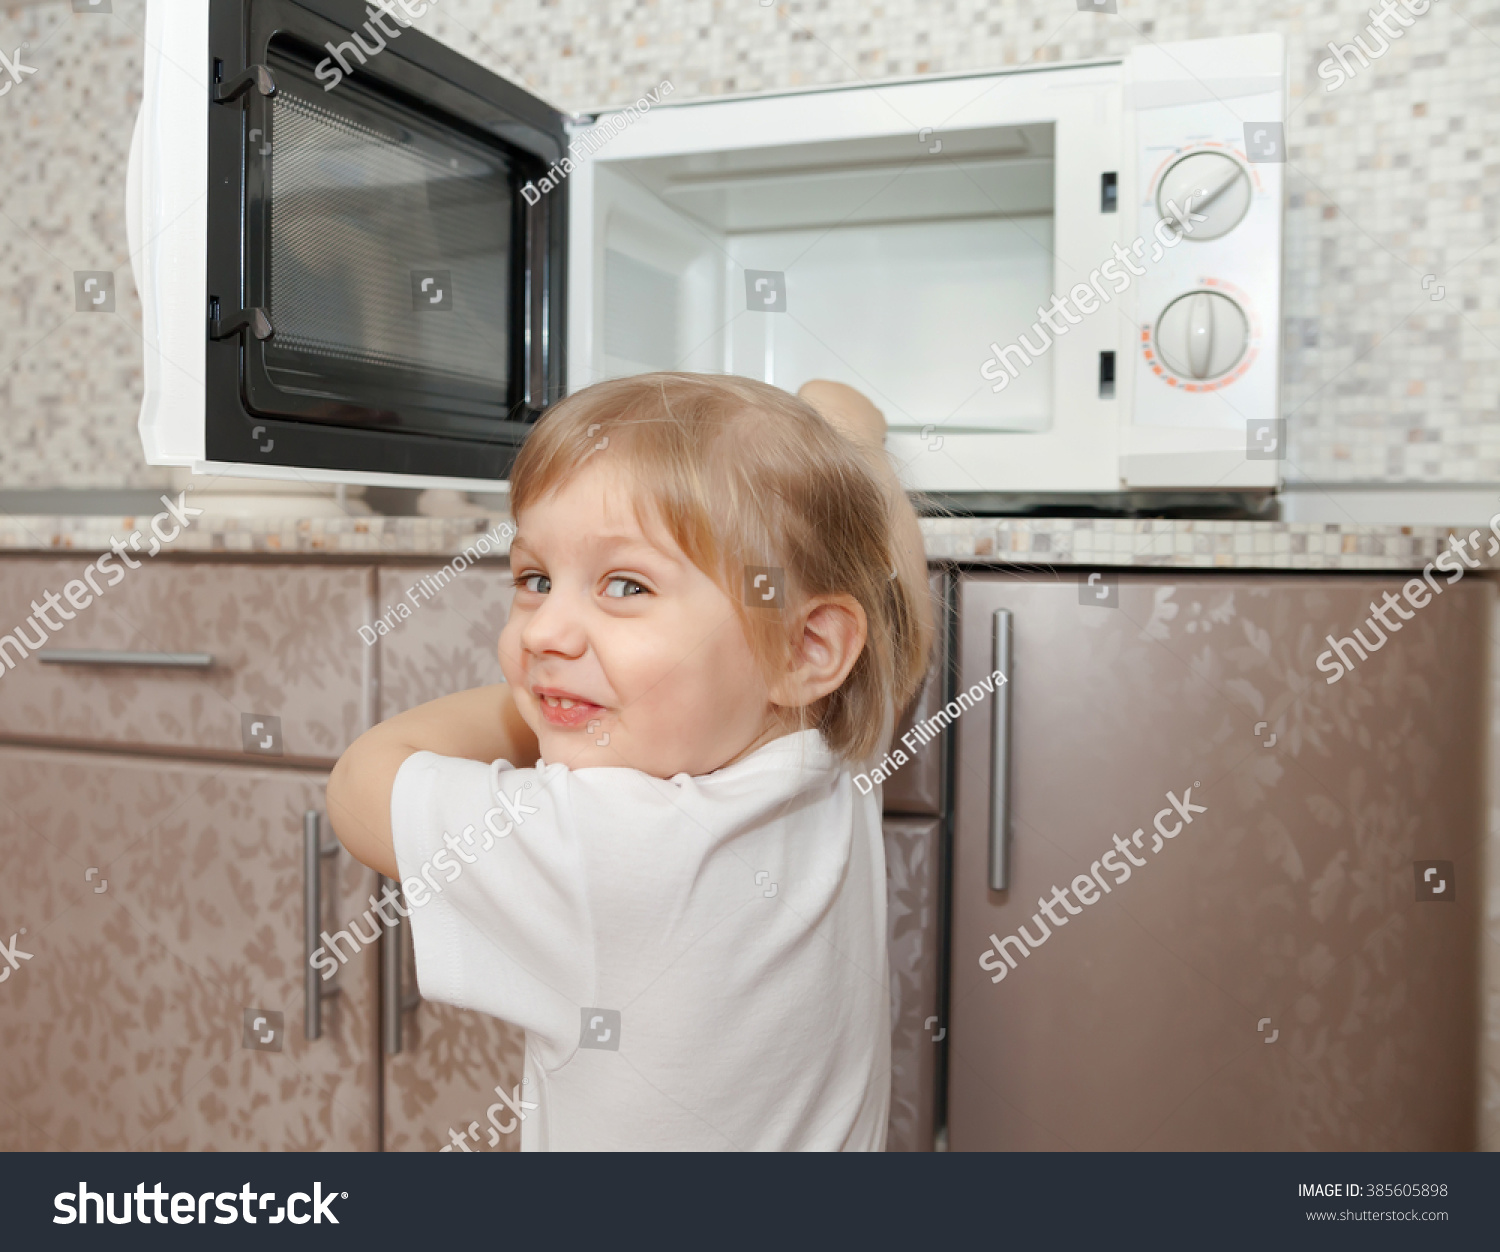 royalty child out supervision of parents  child out supervision of parents playing microwave stock photo